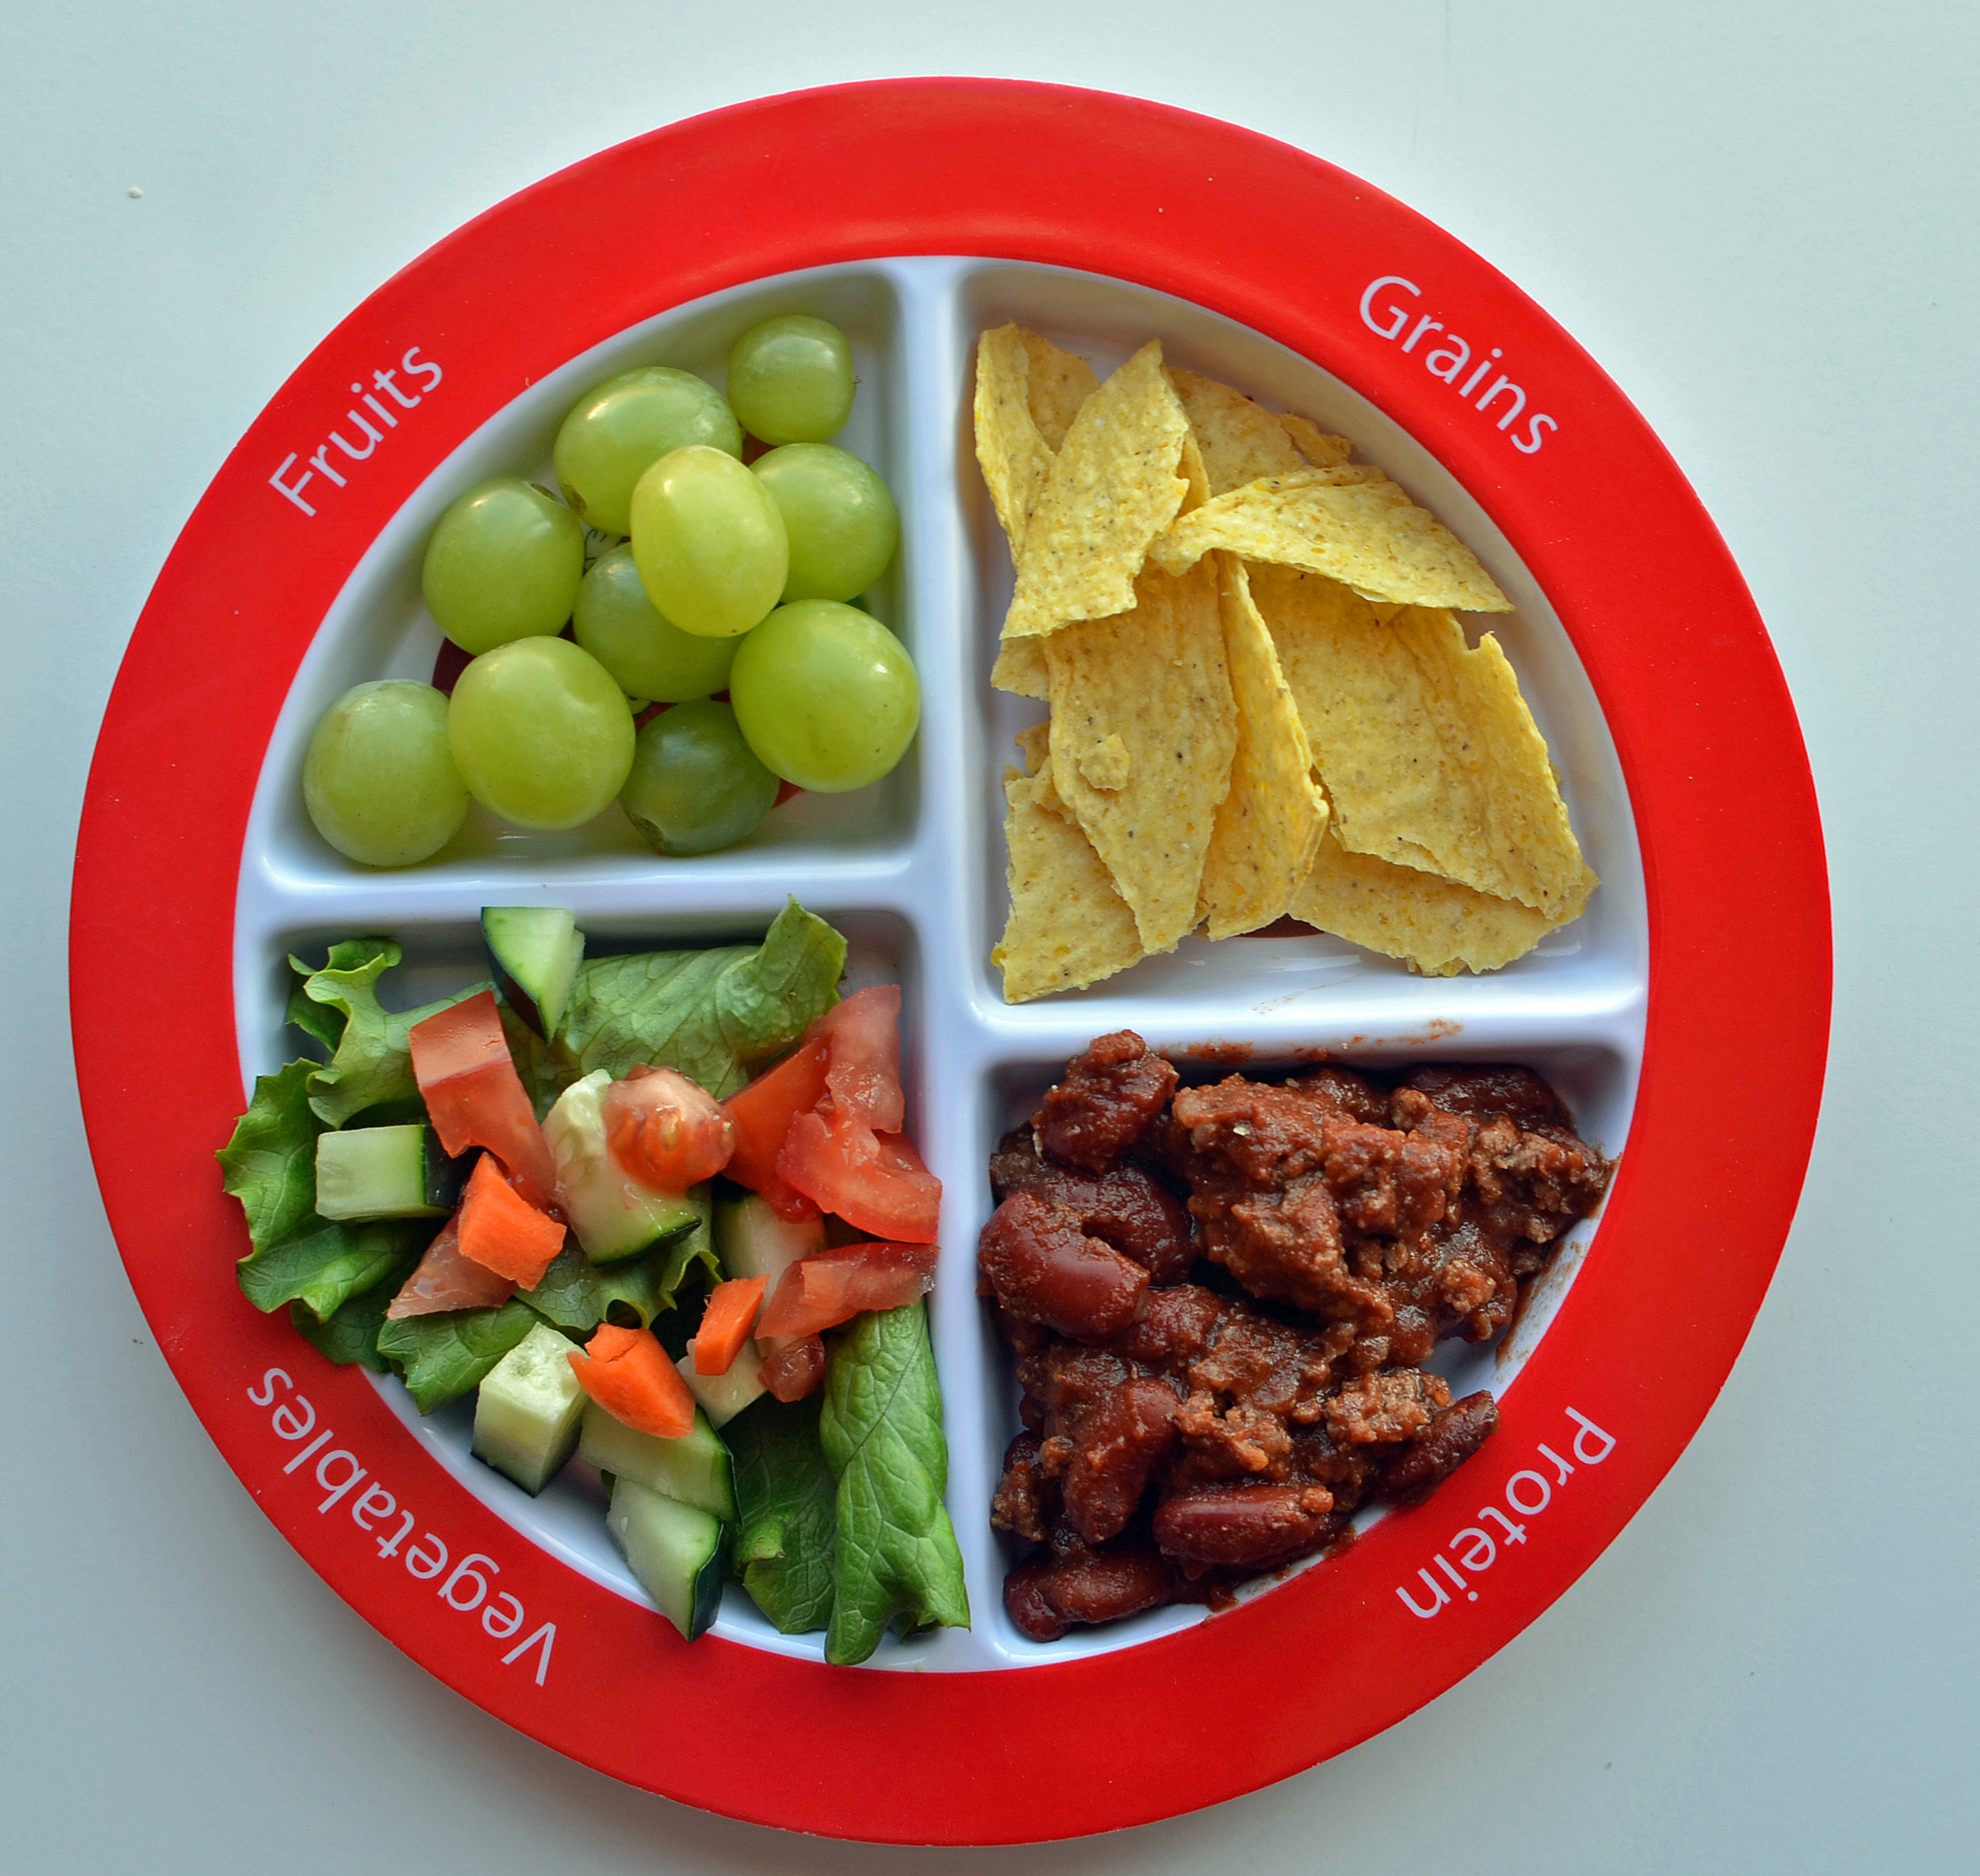 Guide to toddler portion sizes healthy ideas for kids guide to toddler portion sizes all kids are different and grow at different rates forumfinder Gallery